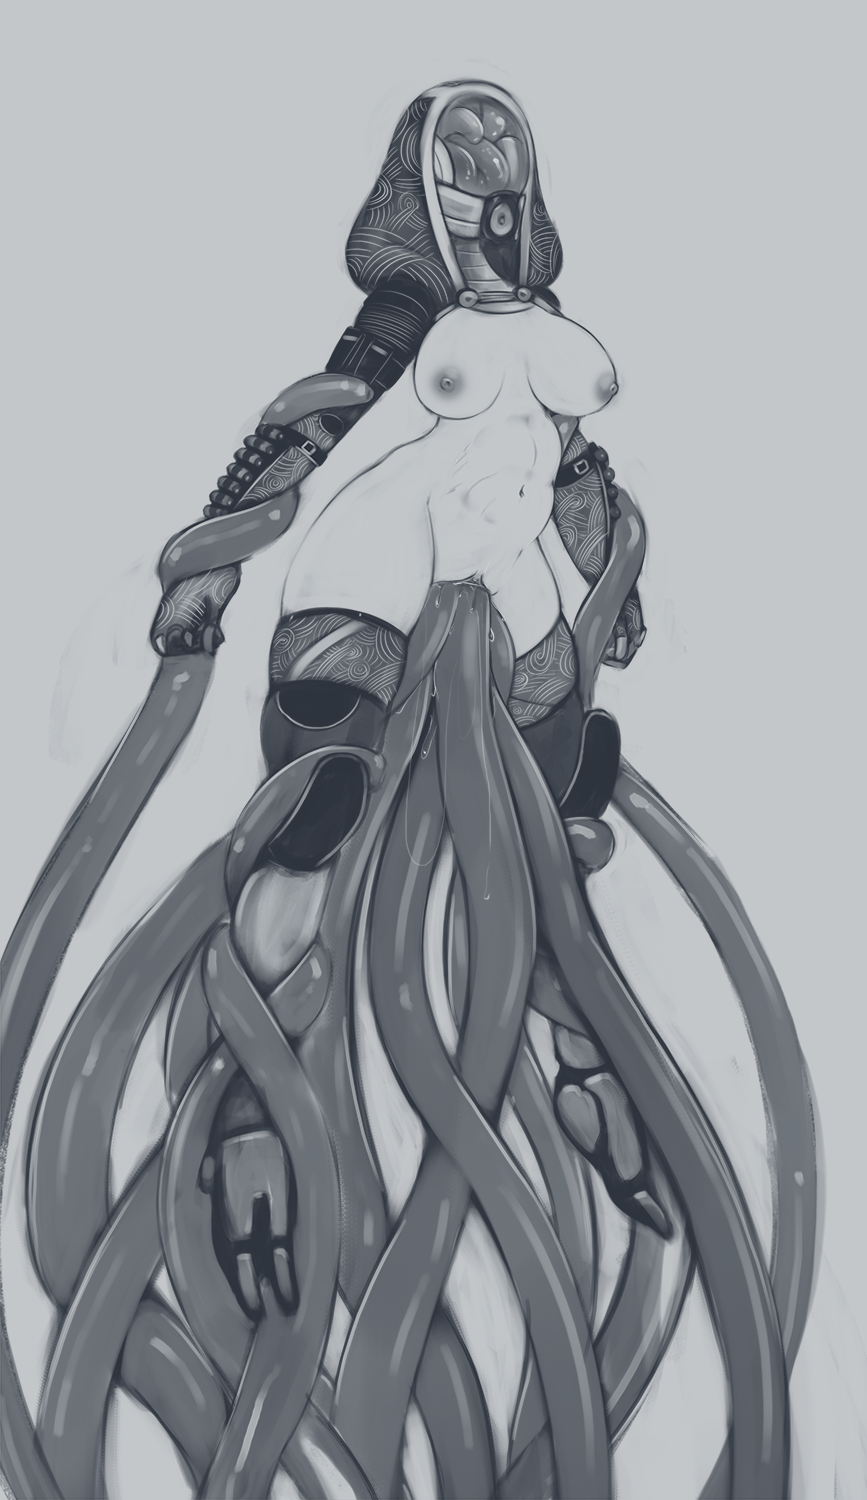 way tentacle all through the You ganged in the wrong repost